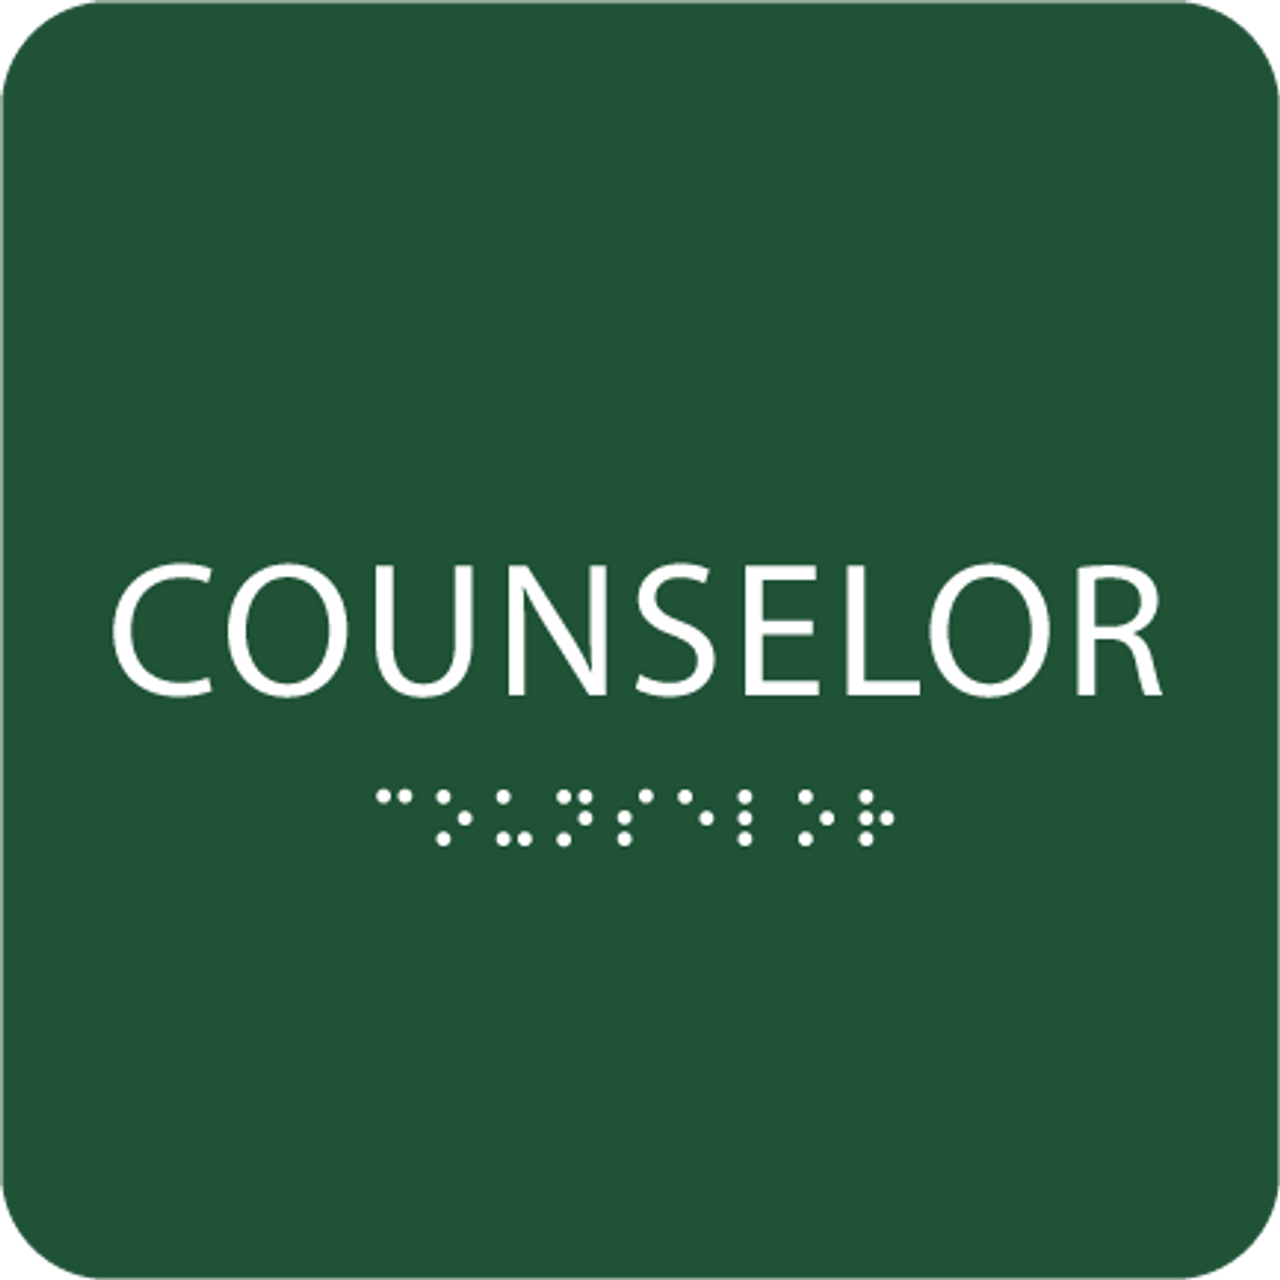 Green Counselor ADA Sign